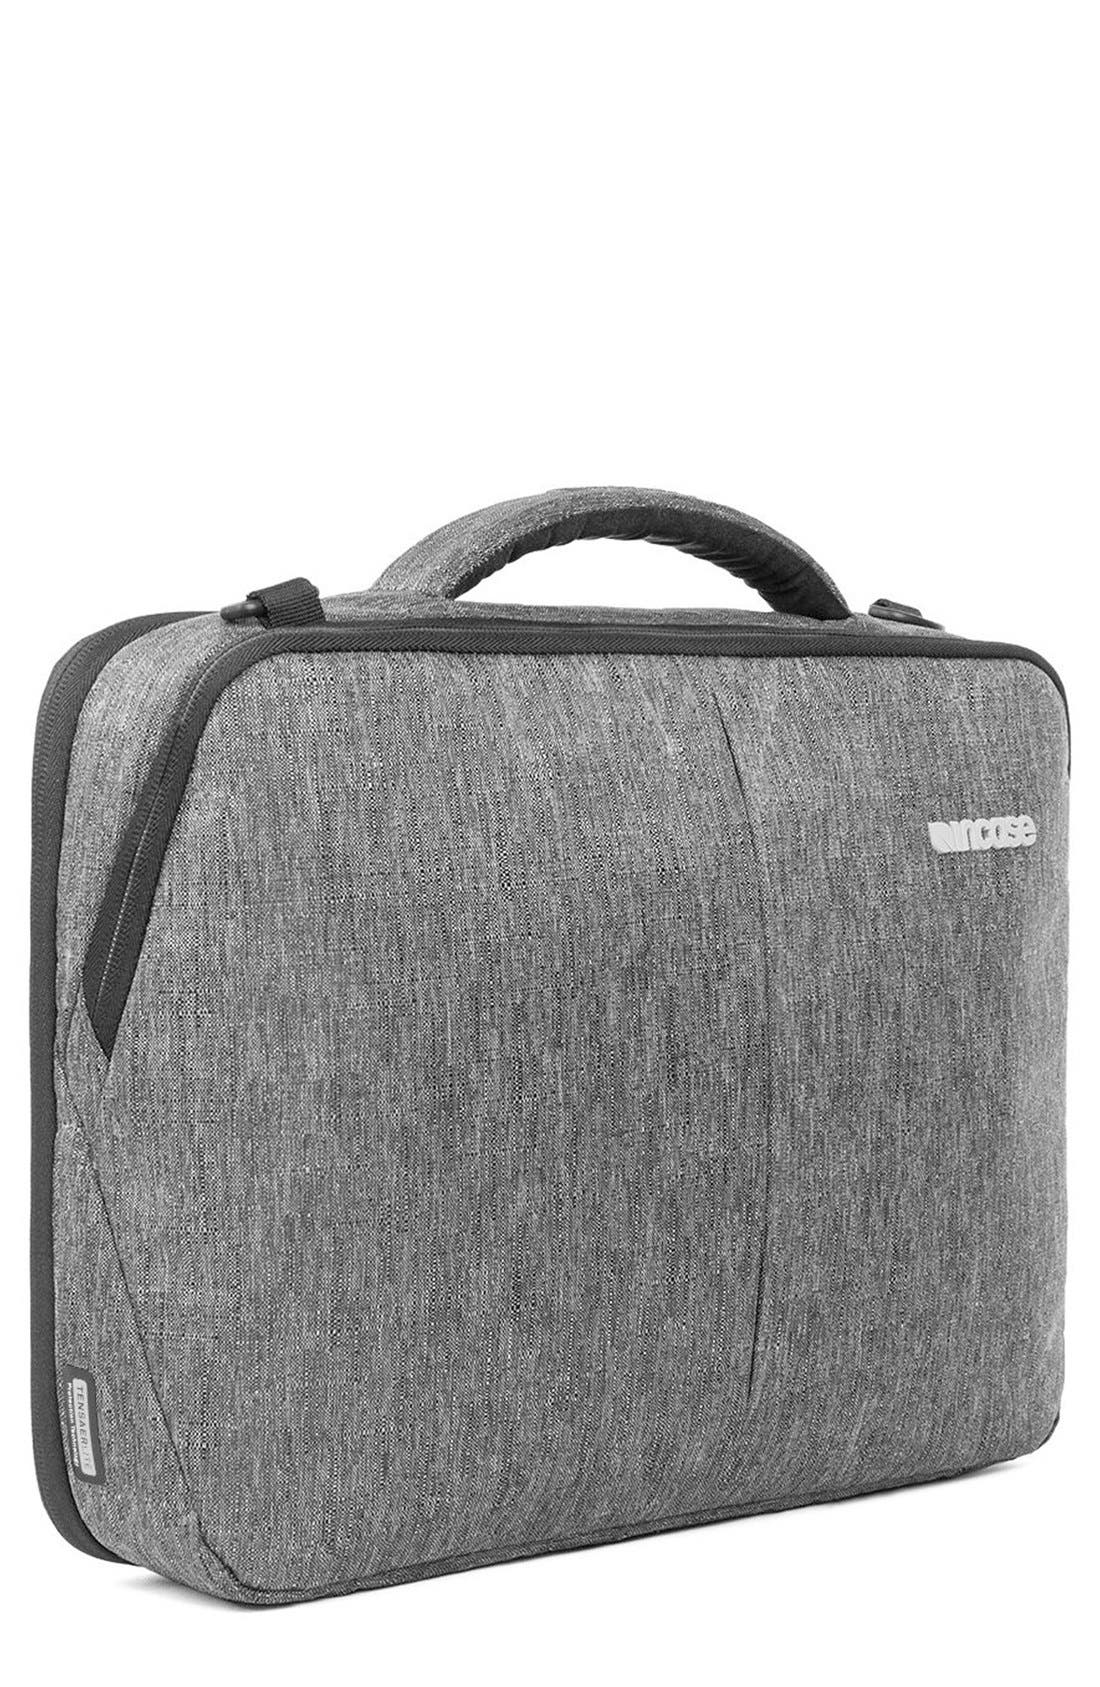 "Incase Designs 'Reform' 15"" Laptop Briefcase"